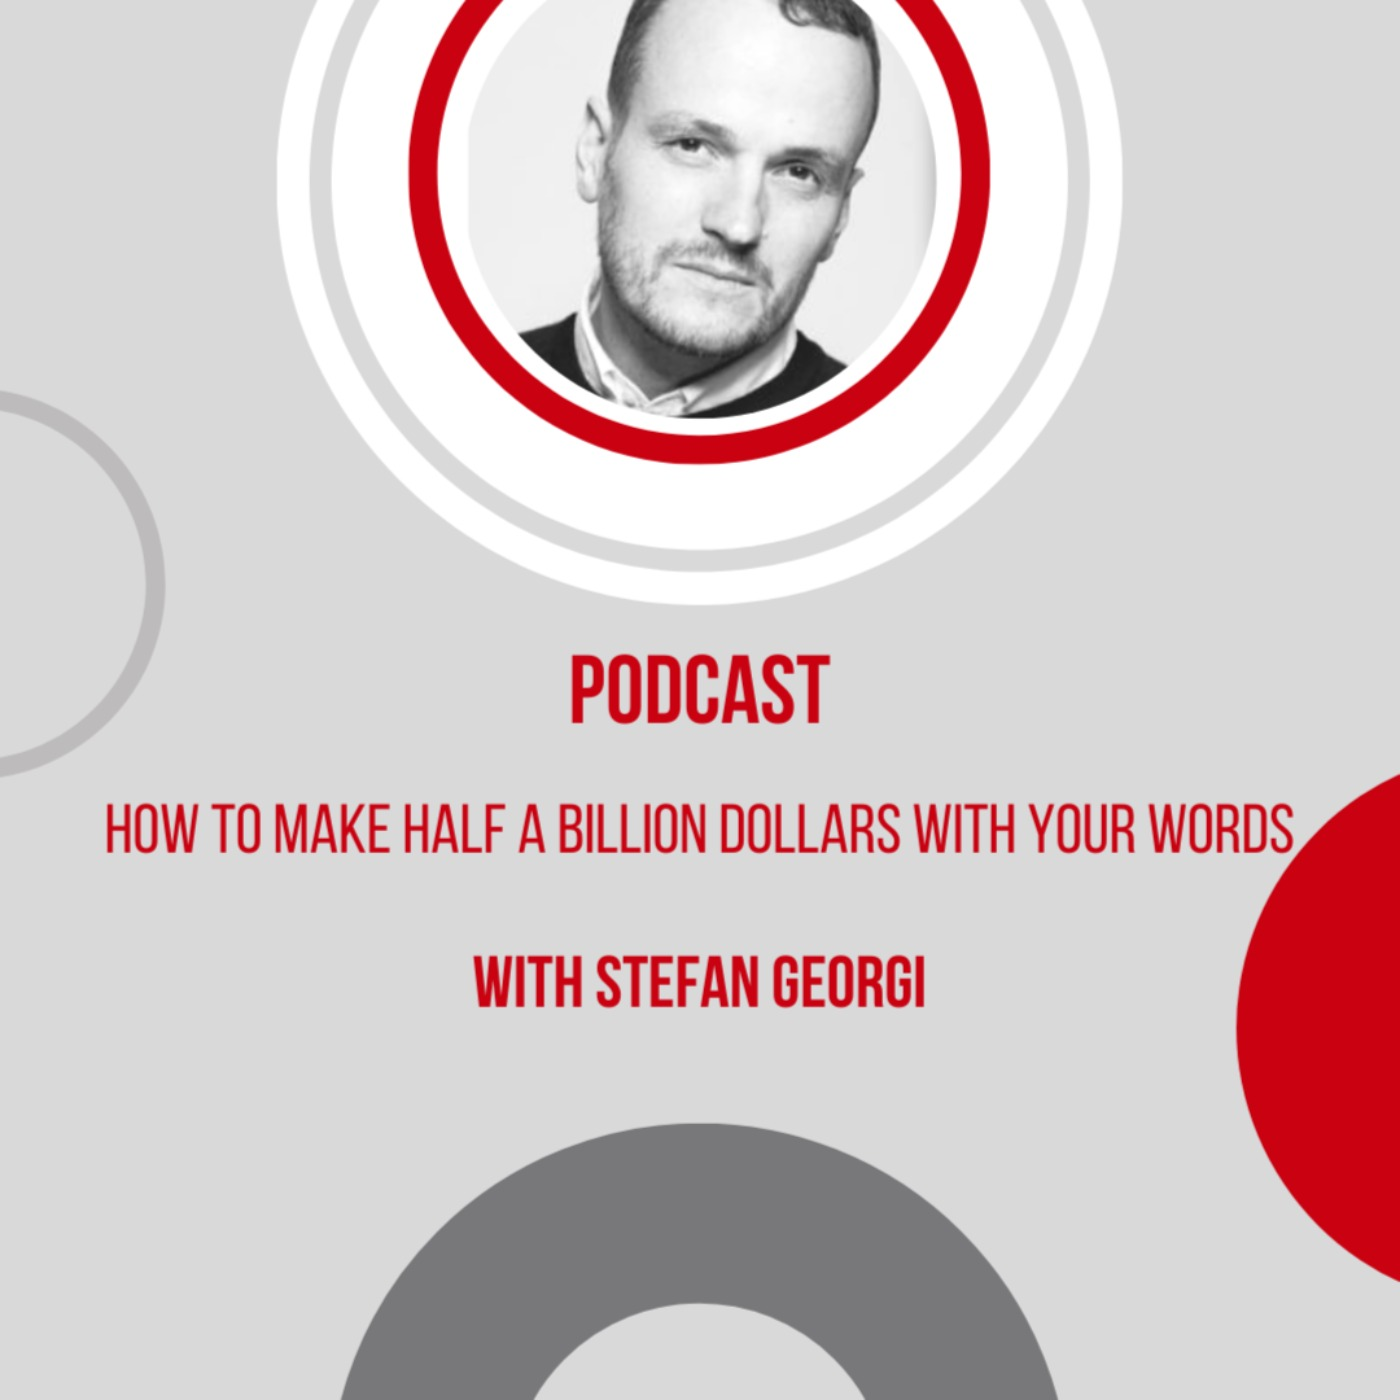 How to Make Half A Billion Dollars Using Your Words